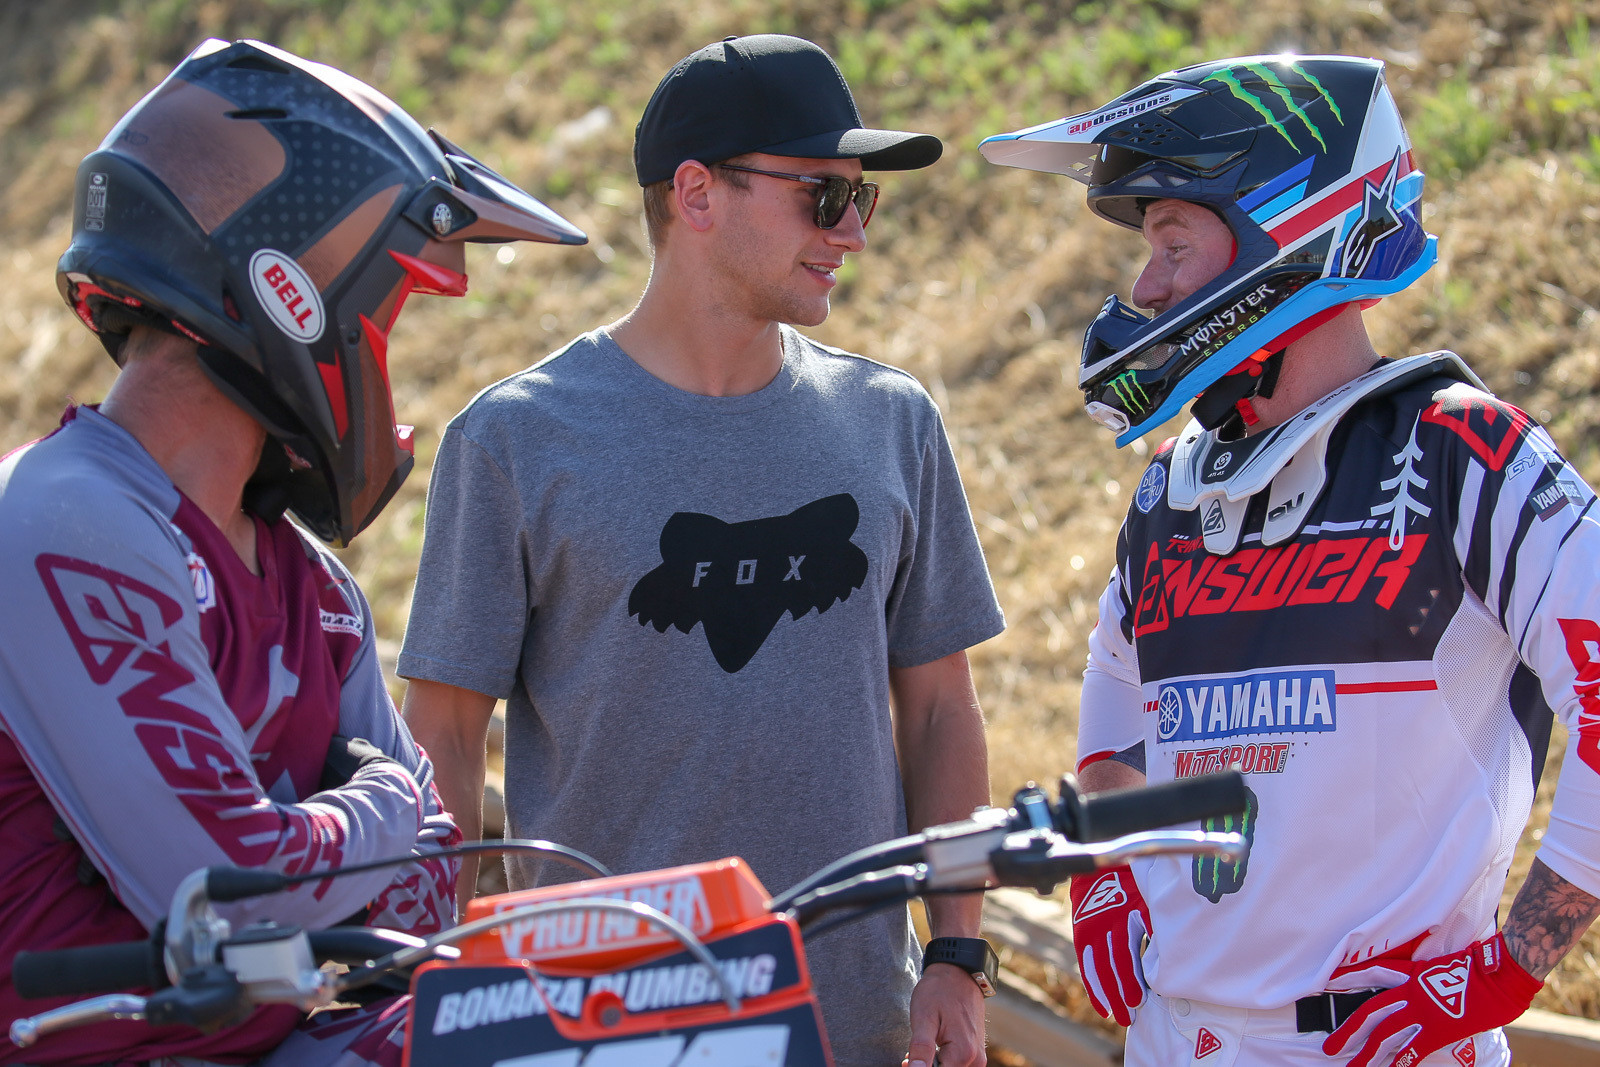 Let's kick this off with the Hangtown 125 race (lest we get further accused of ignoring it), here are a bunch of highlights.Ken Roczen came down to check out the Friday practice, and chat with Ryan Villopoto and Michael Sleeter.